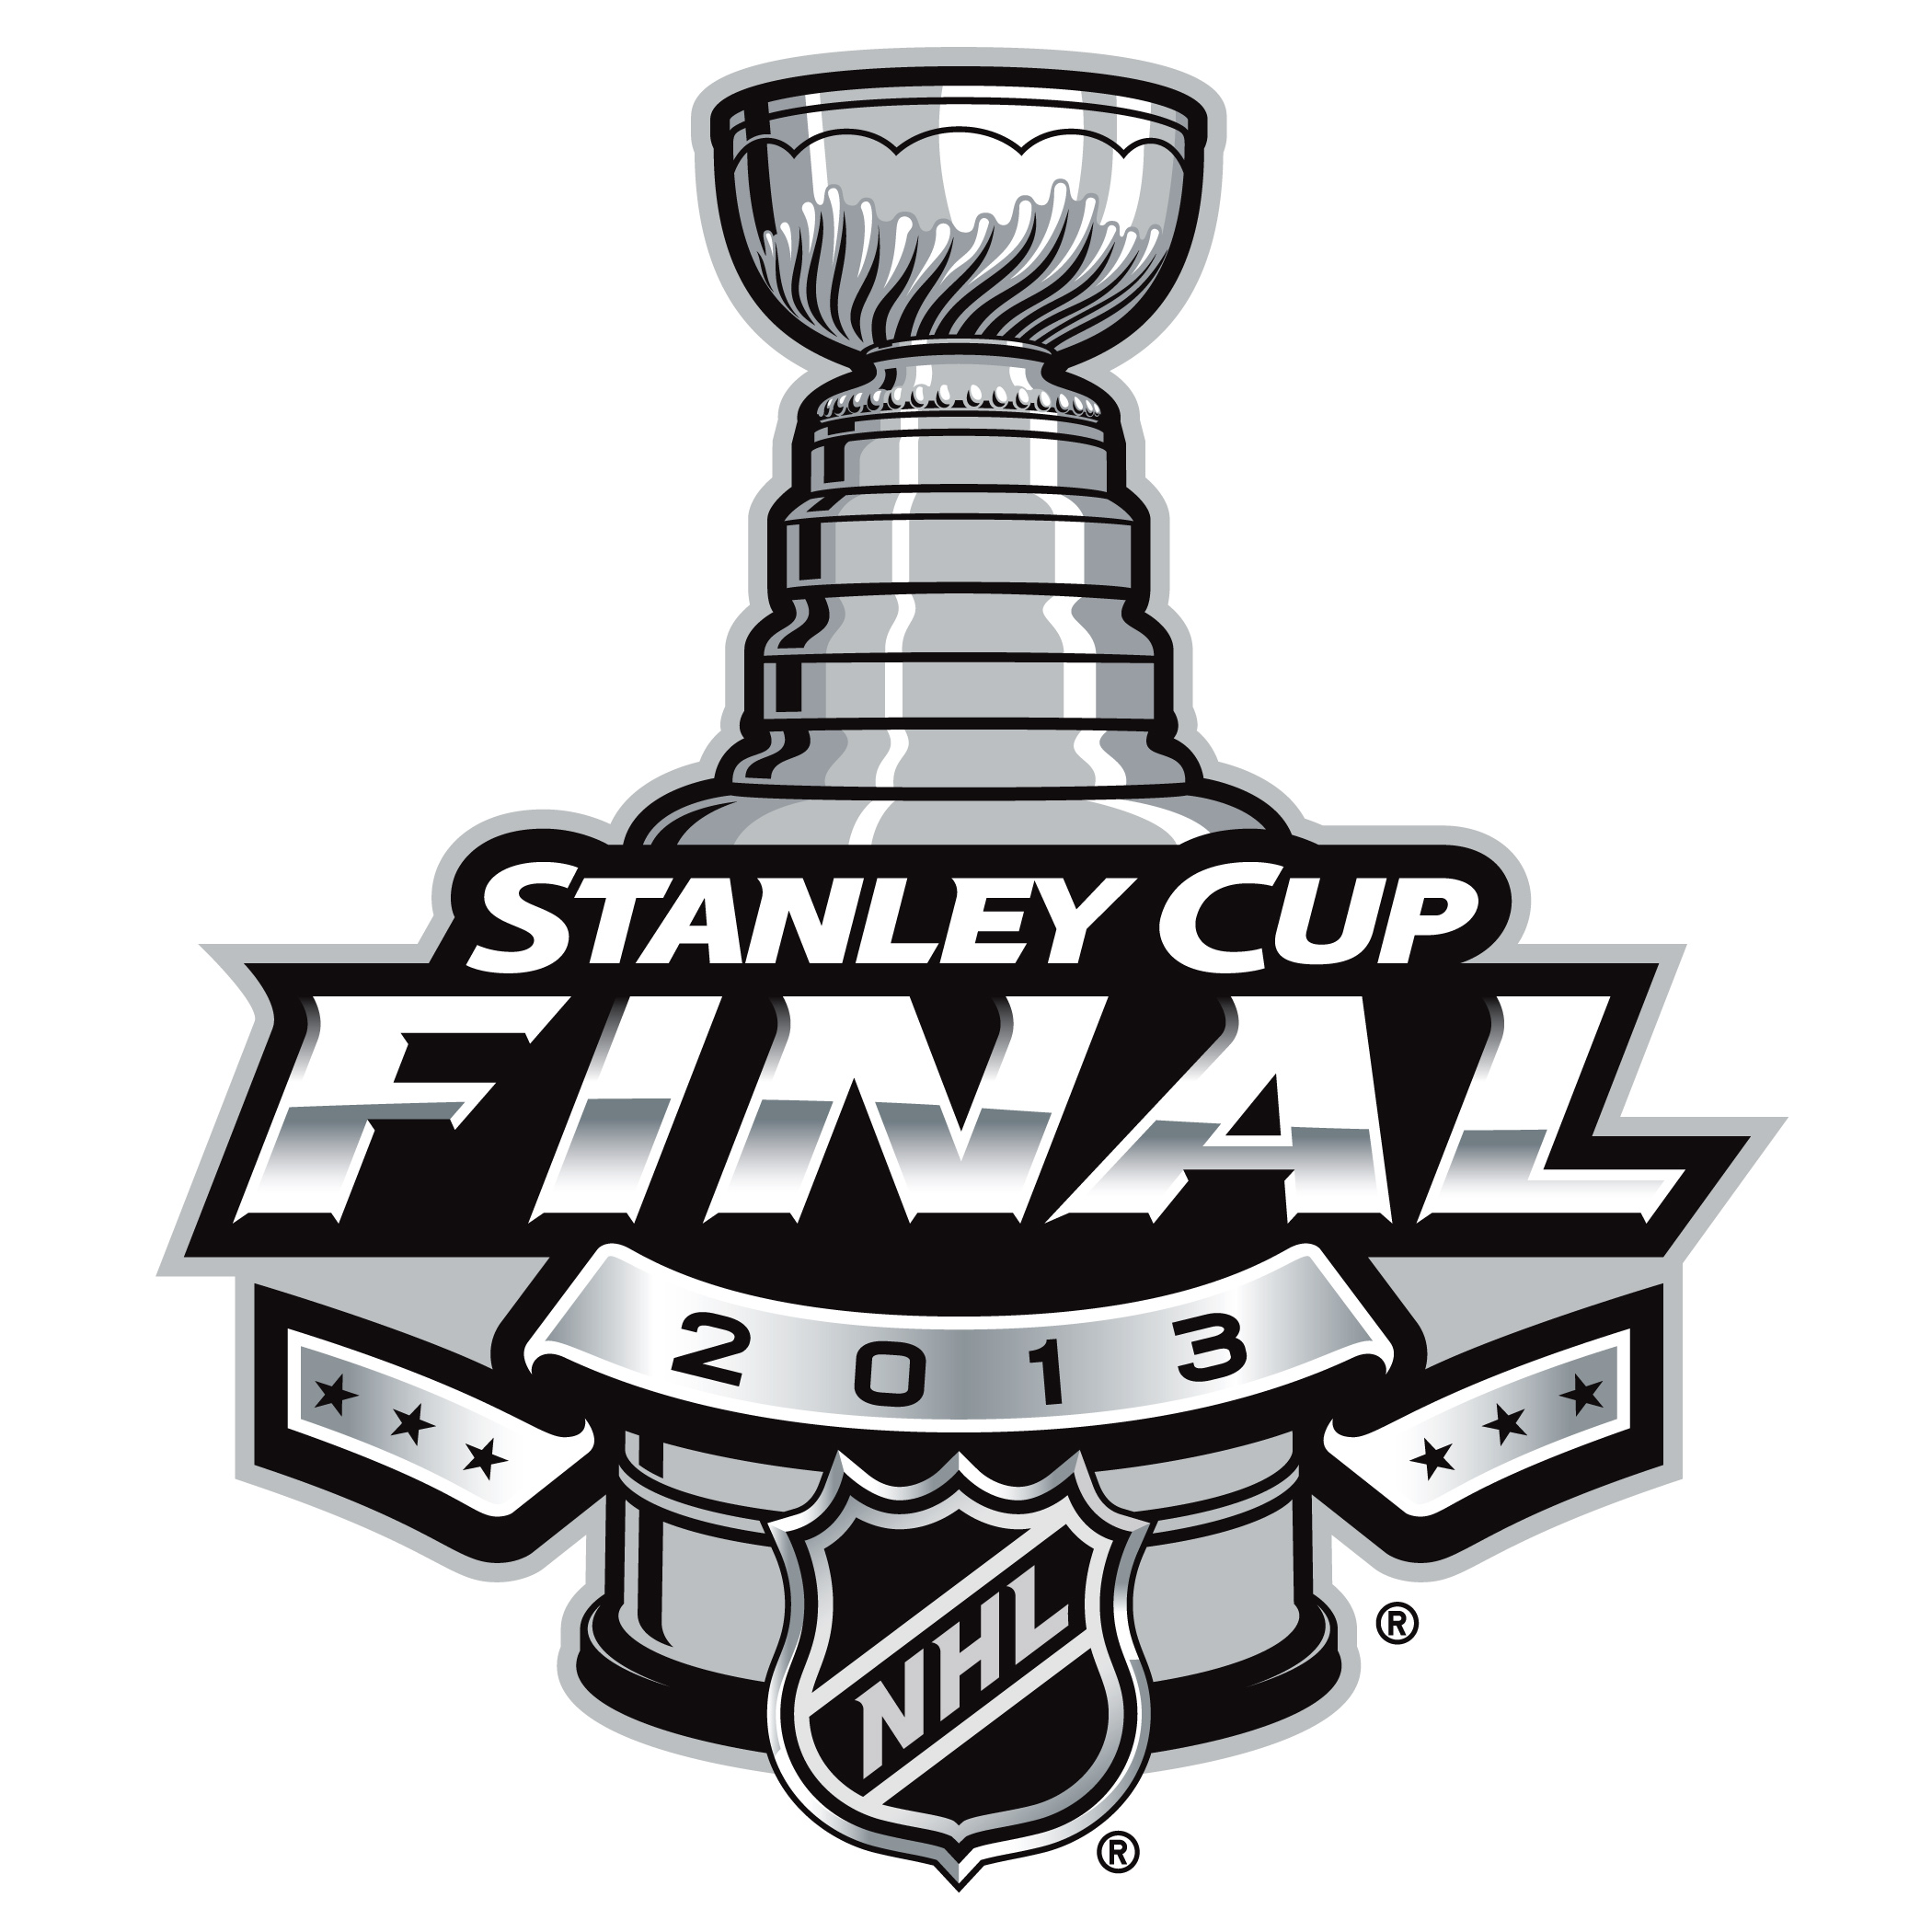 The Stanley Cup final